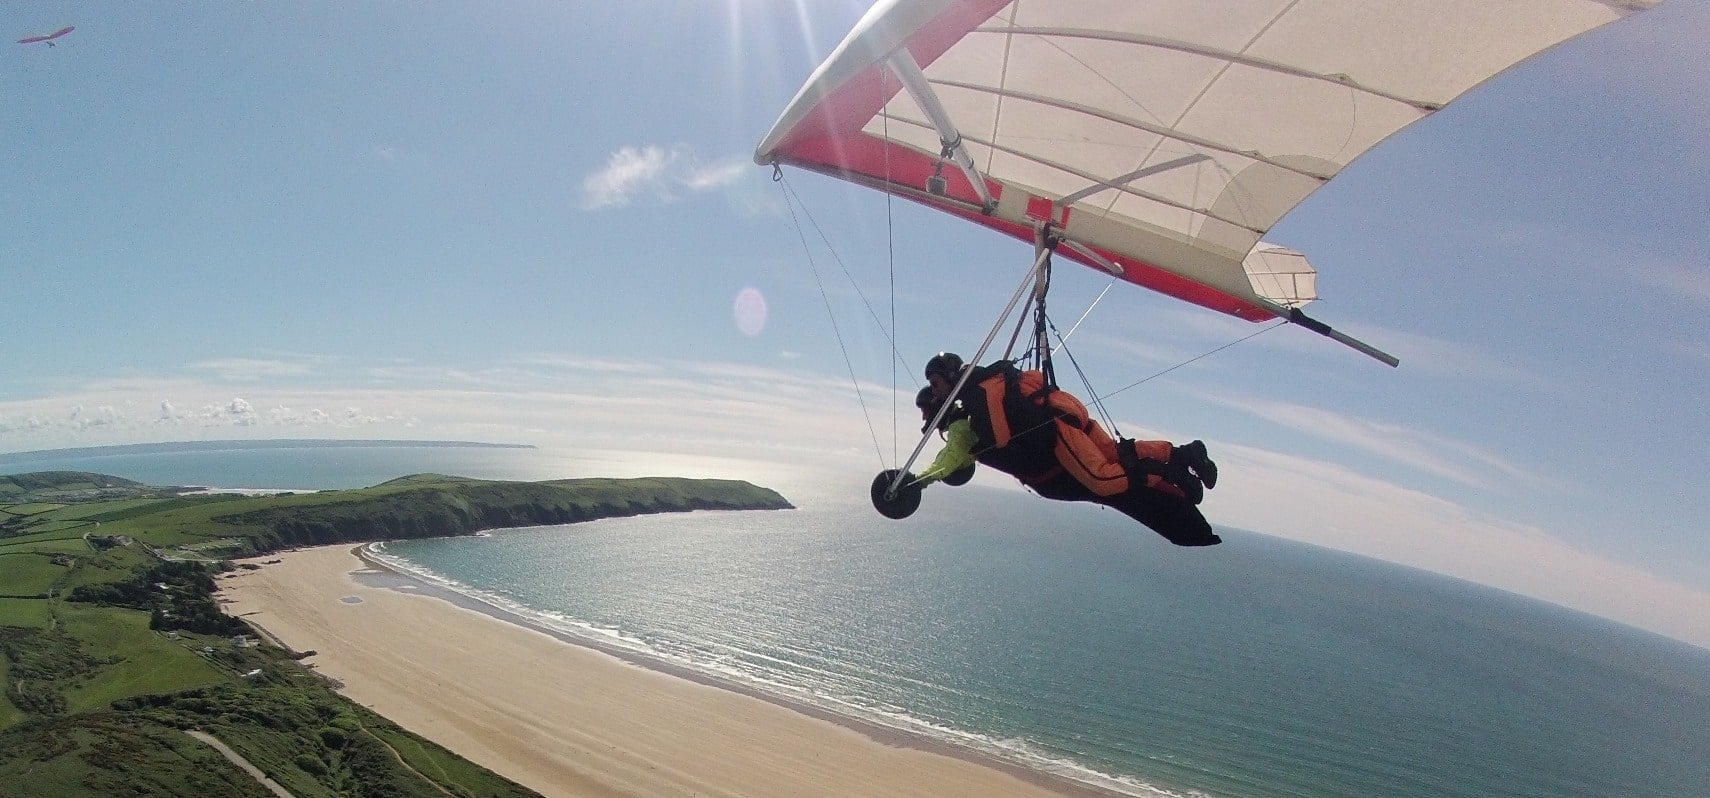 The Ultimate Hang Gliding Experience In Devon